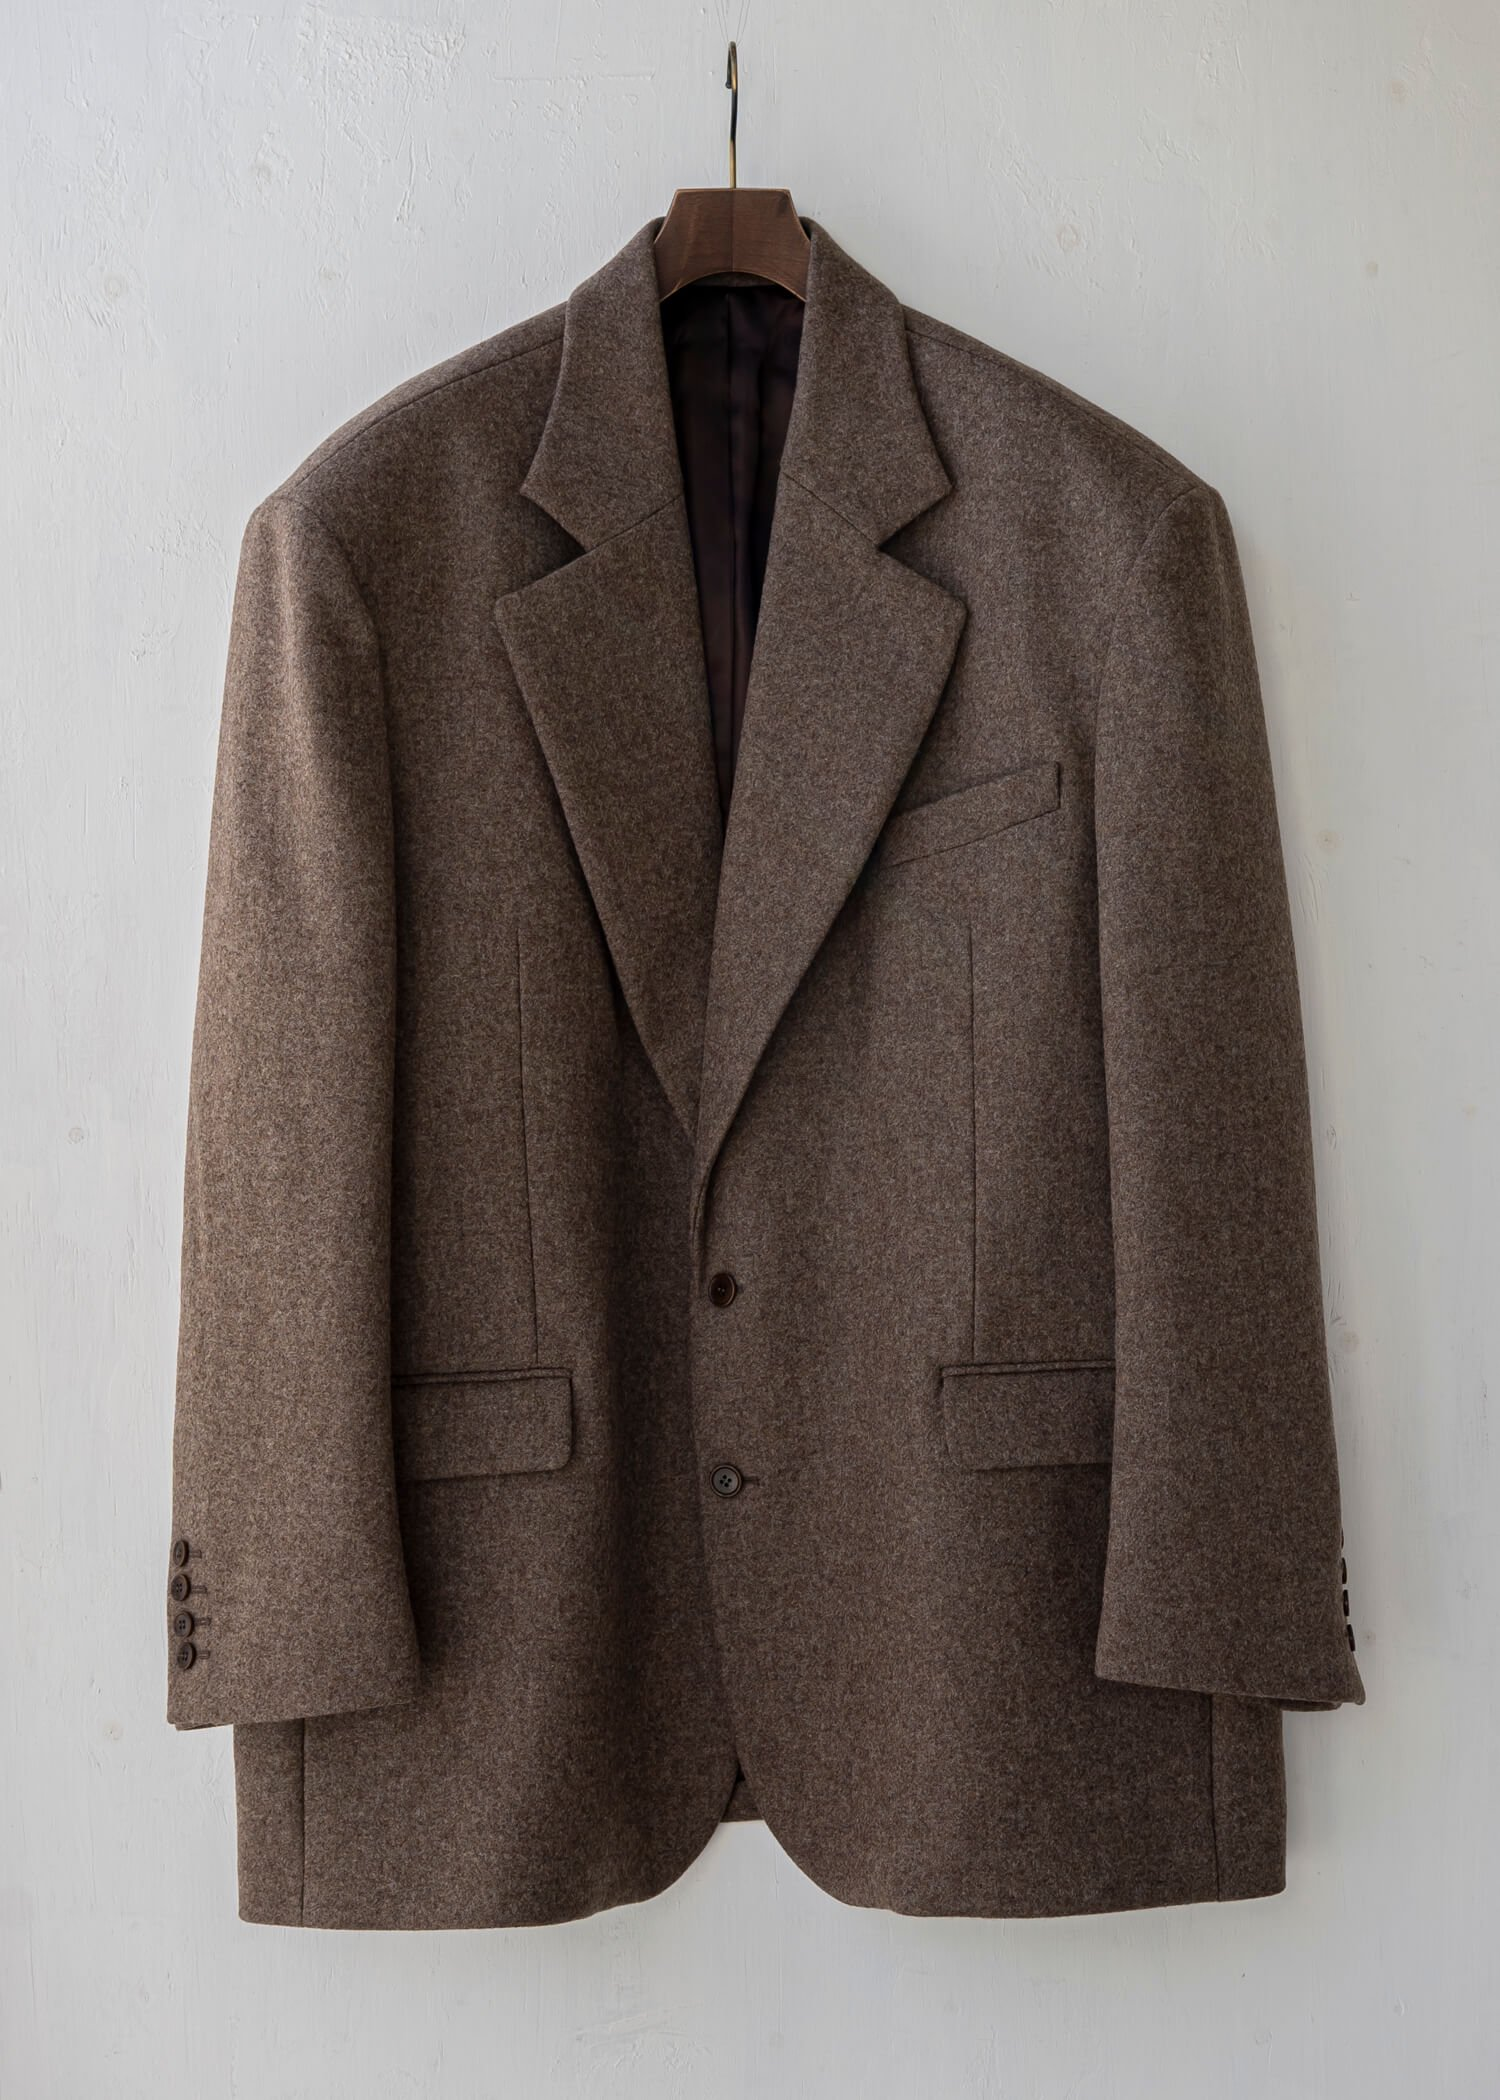 HED MAYNER / SINGLE BREASTED COAT